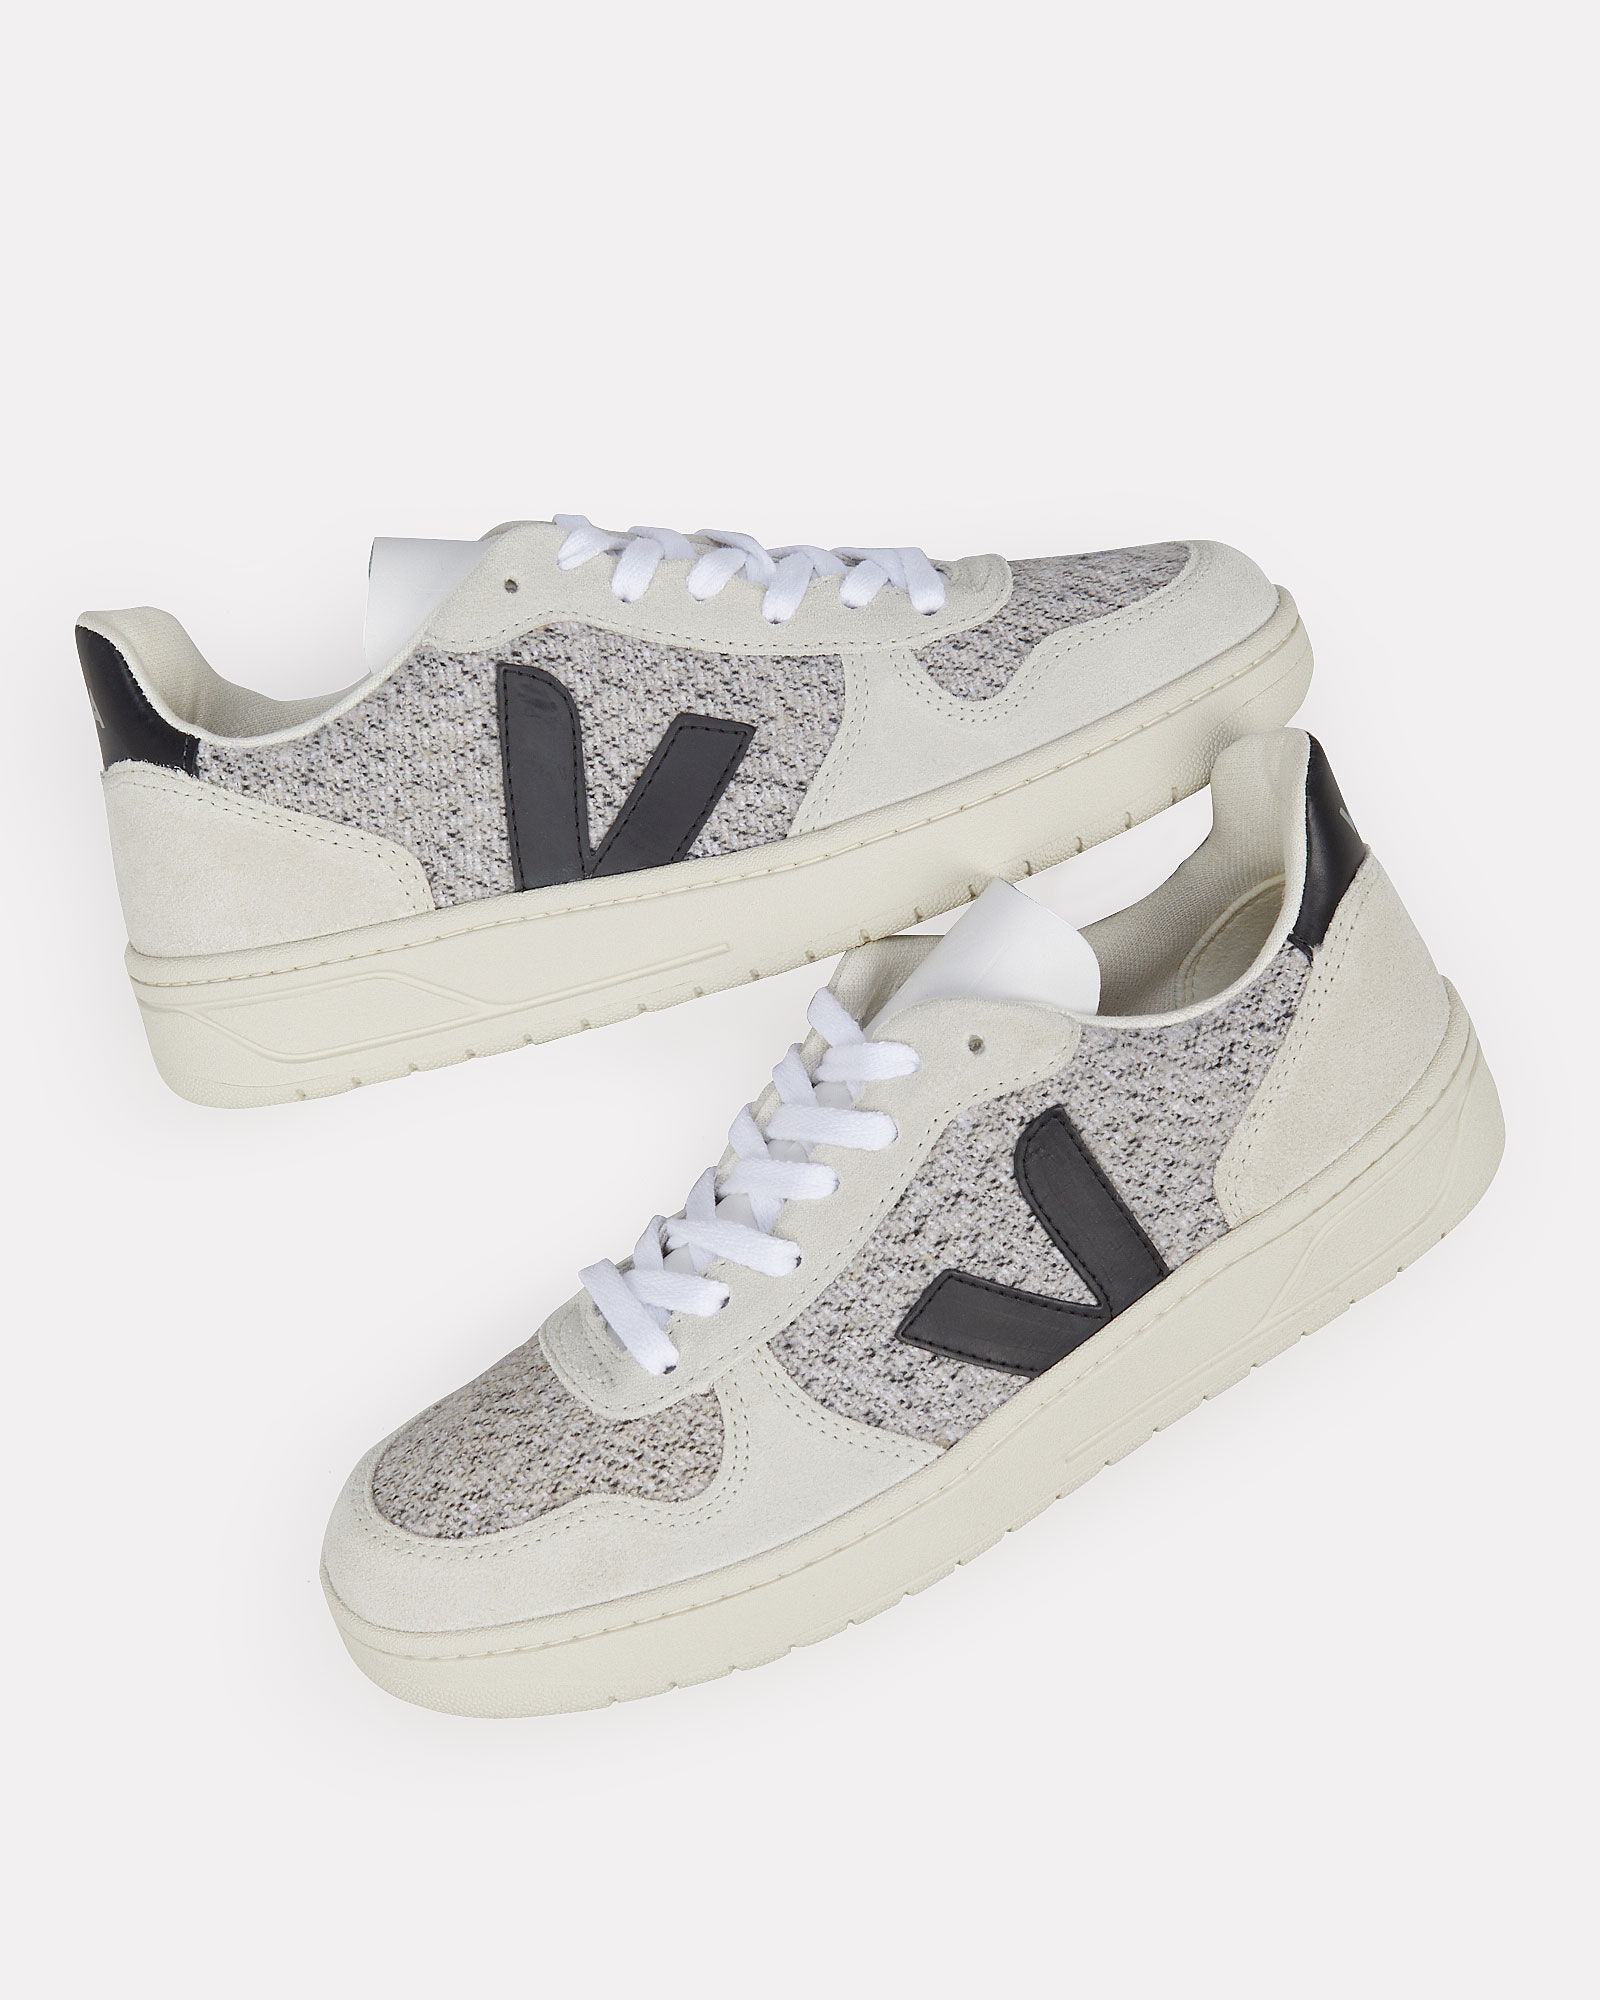 V-10 Low Top Sneakers, BLK/WHT, hi-res